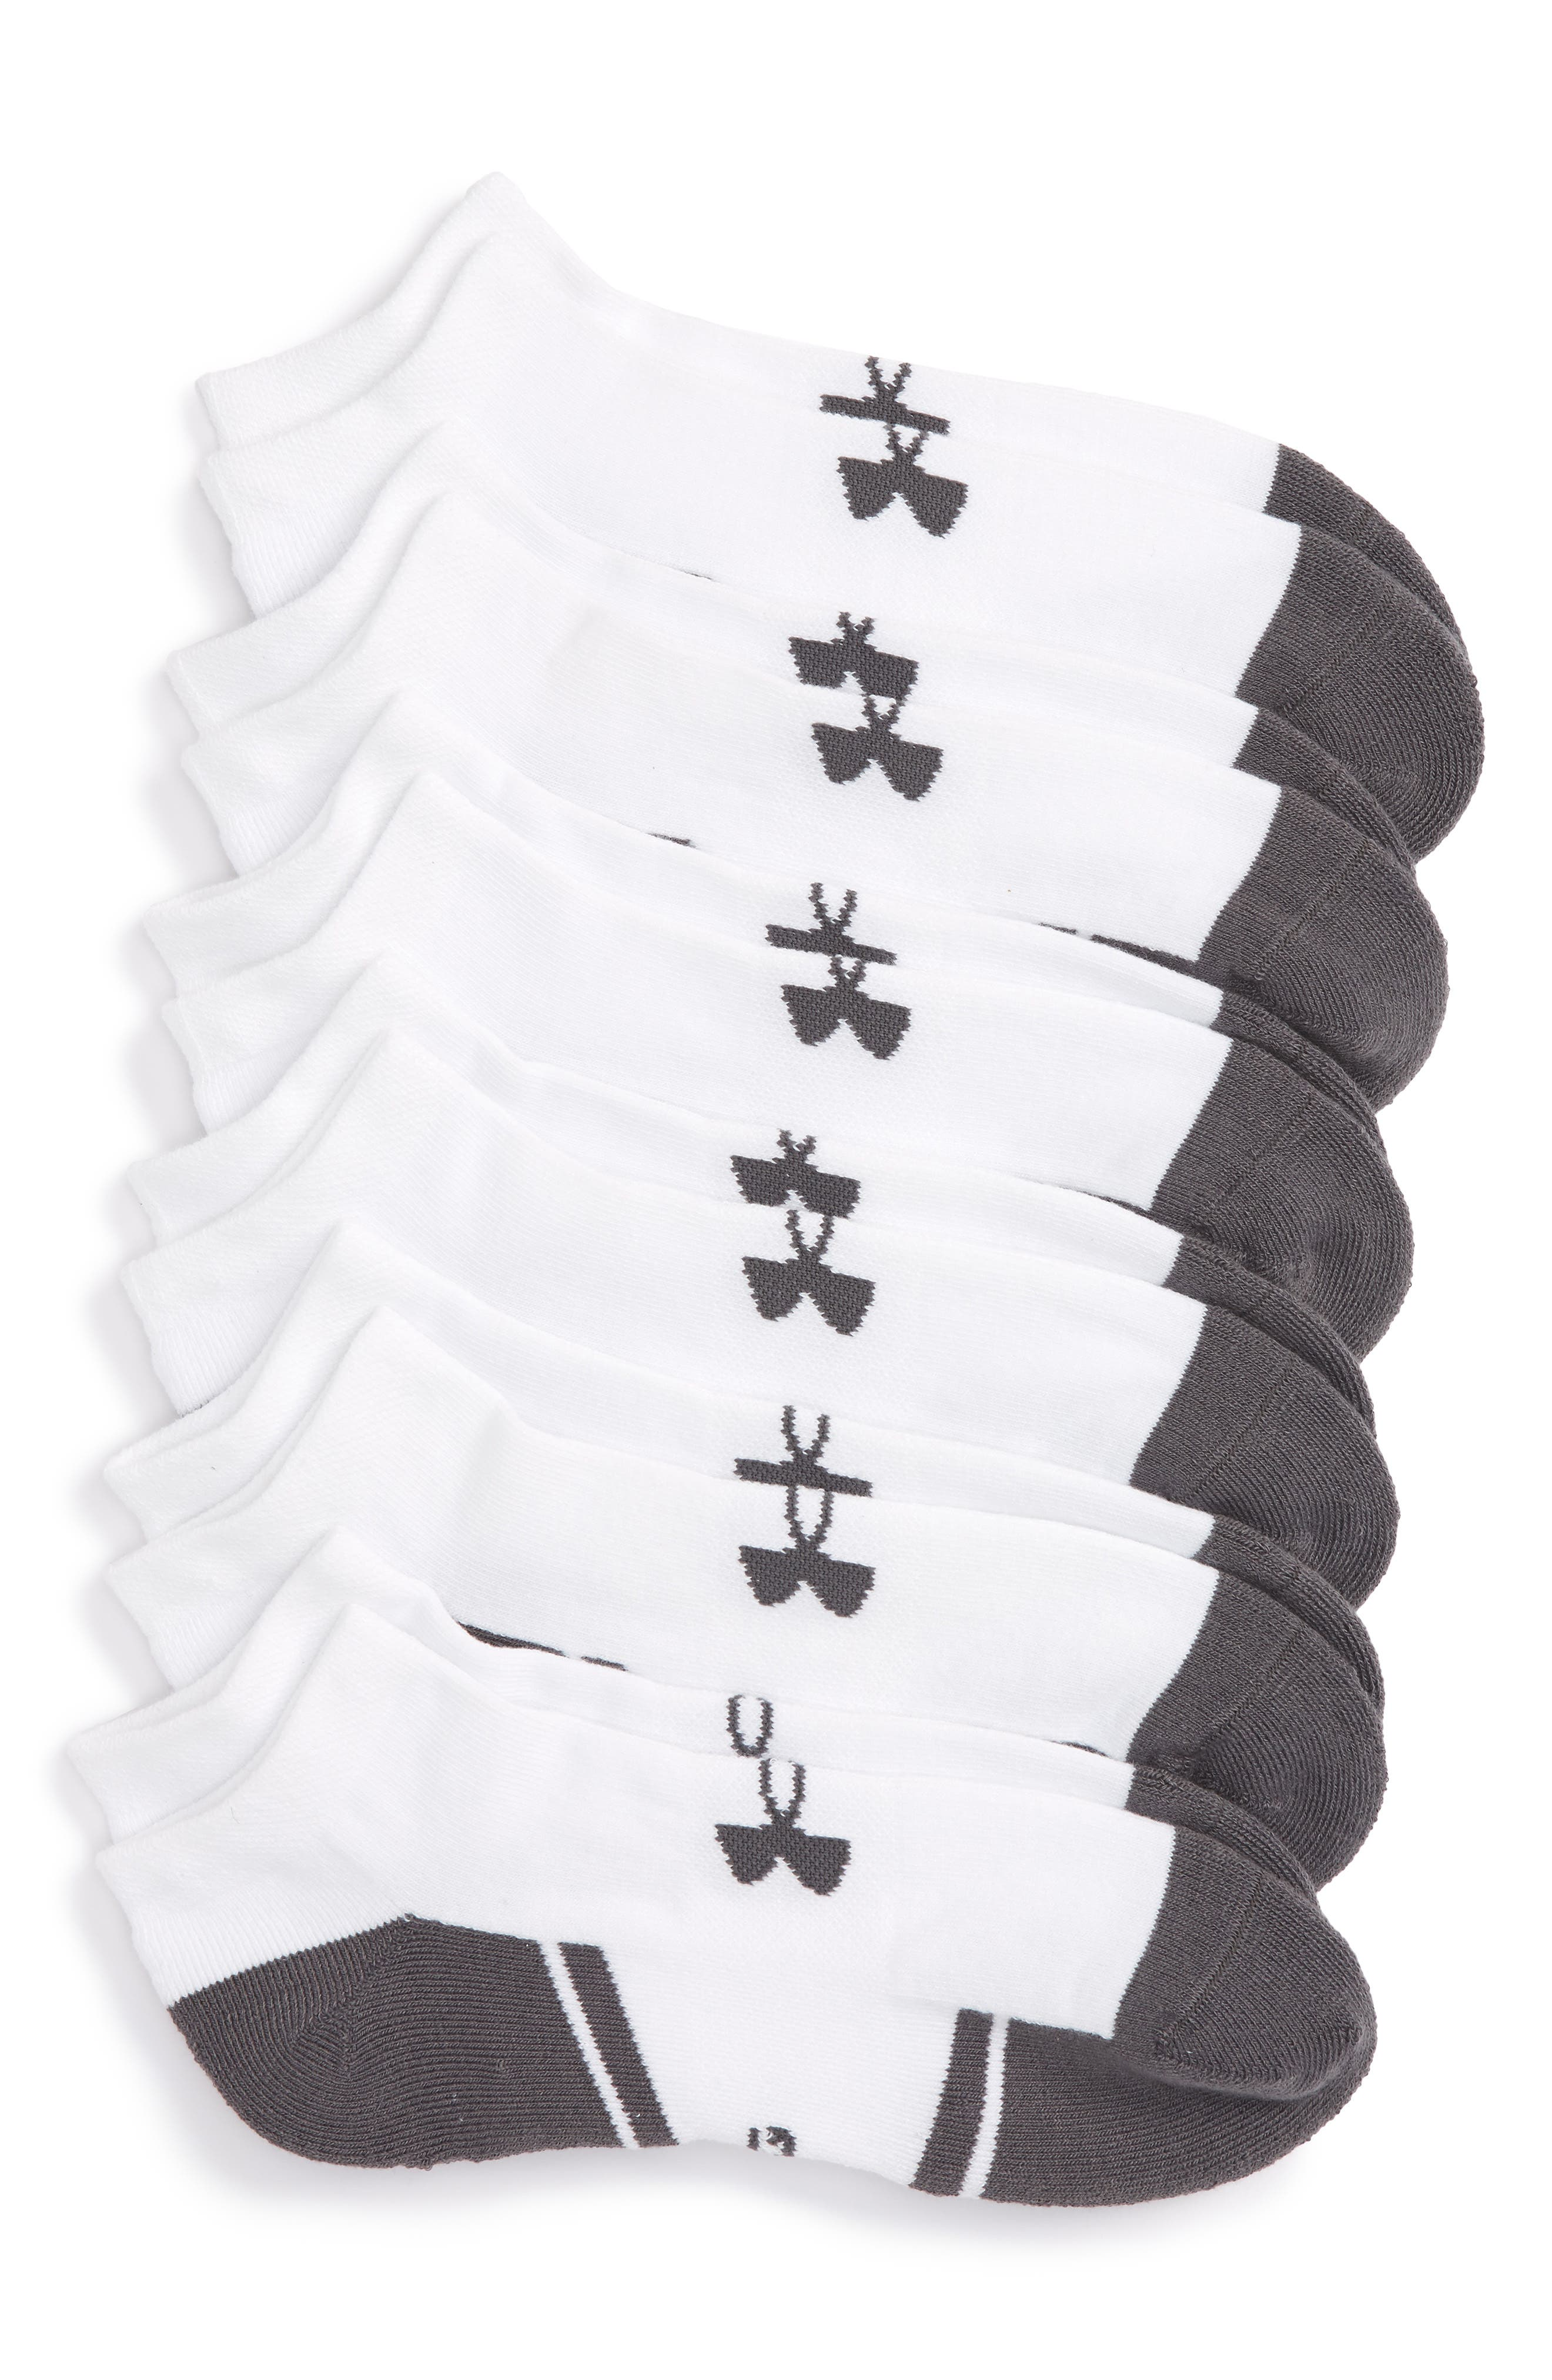 Main Image - Under Armour Resistor 3.0 6-Pack No-Show Socks